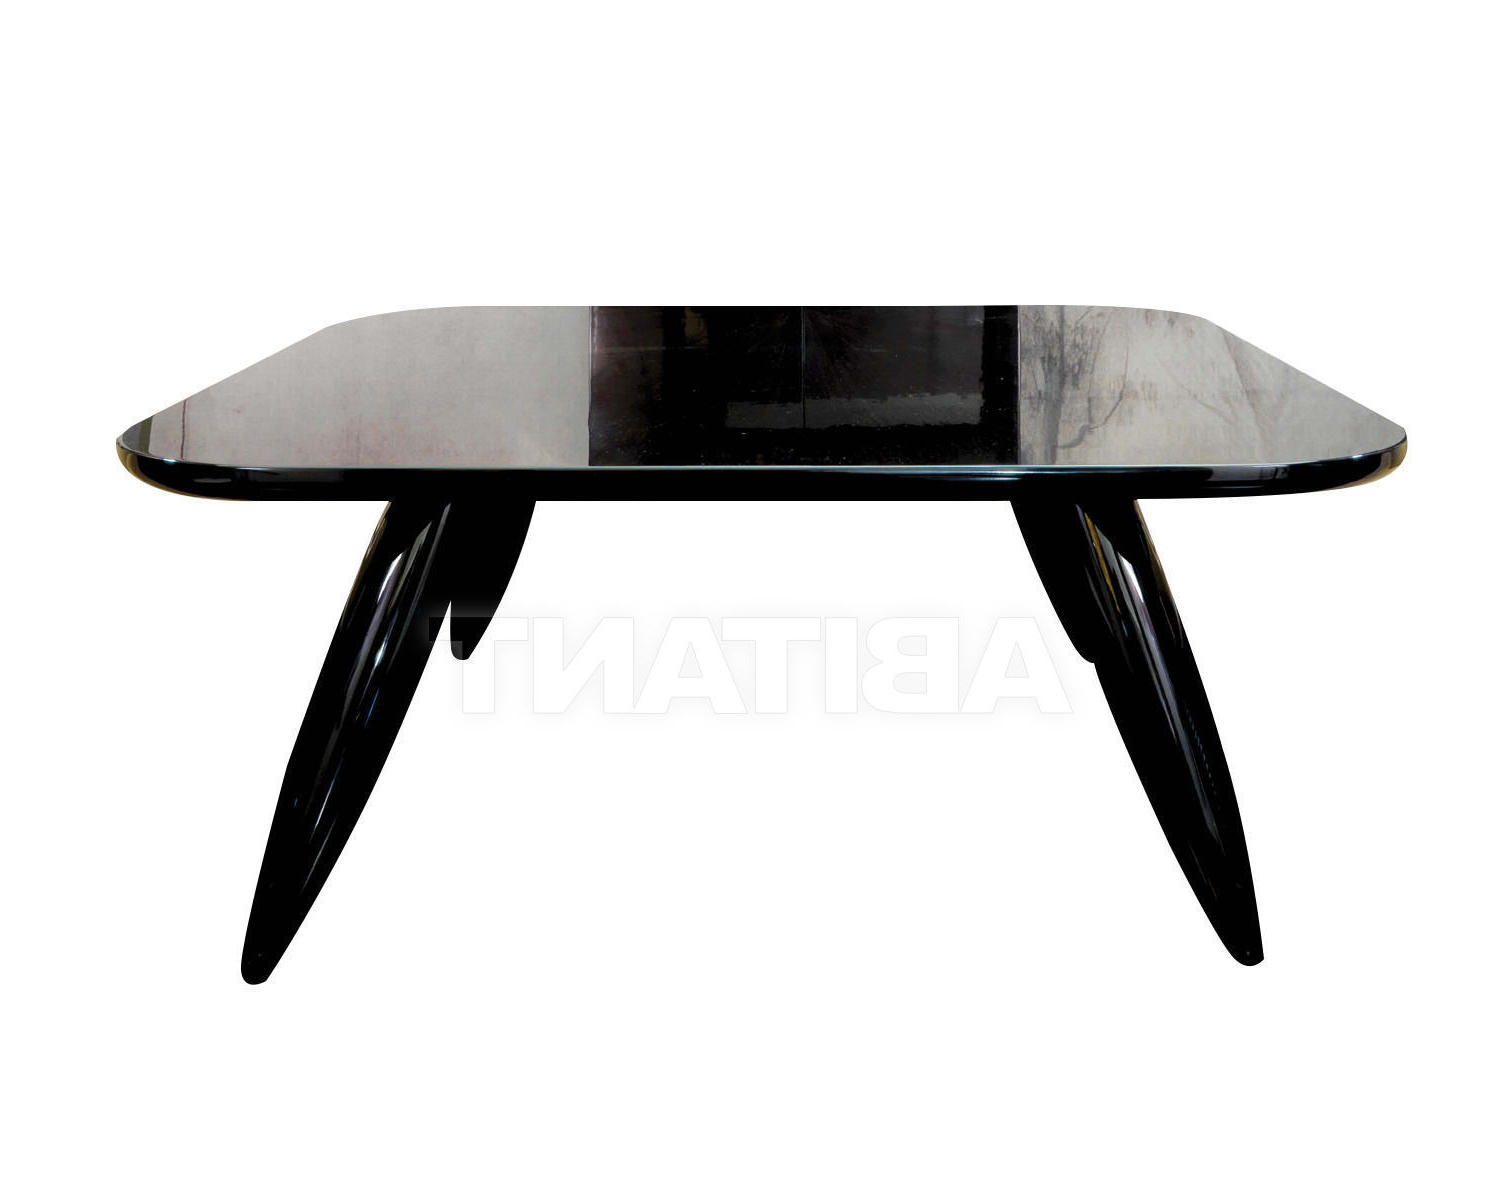 Dom Square Dining Tables intended for Well known Dining Table Black Dom Edizioni Lollo Square, : Buy, Оrder